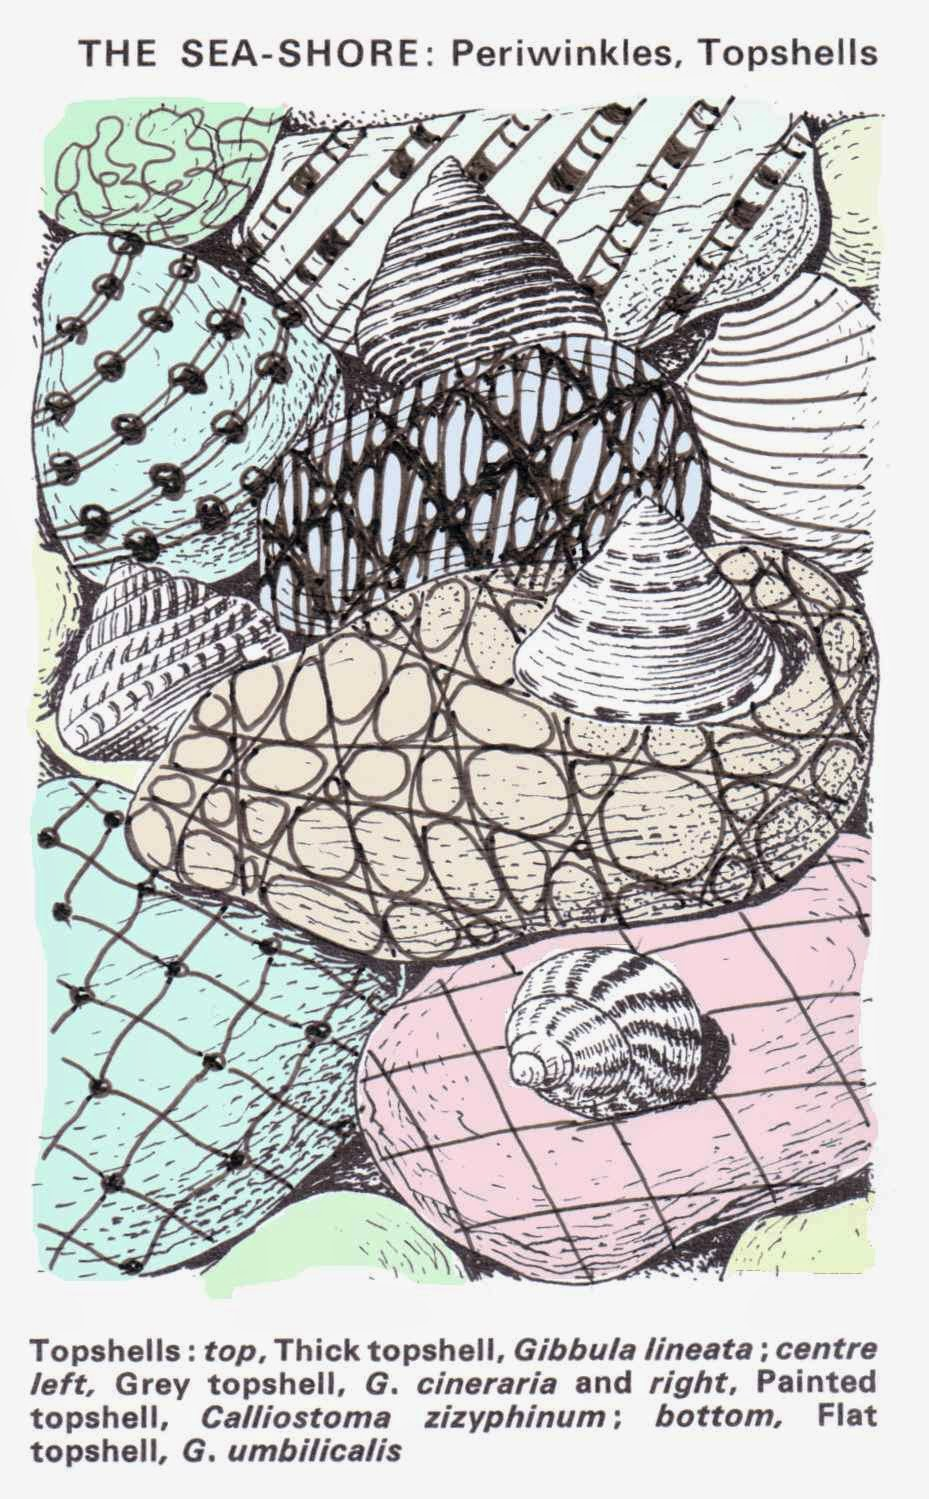 Zentangle drawn over illustration of shells and lightly coloured